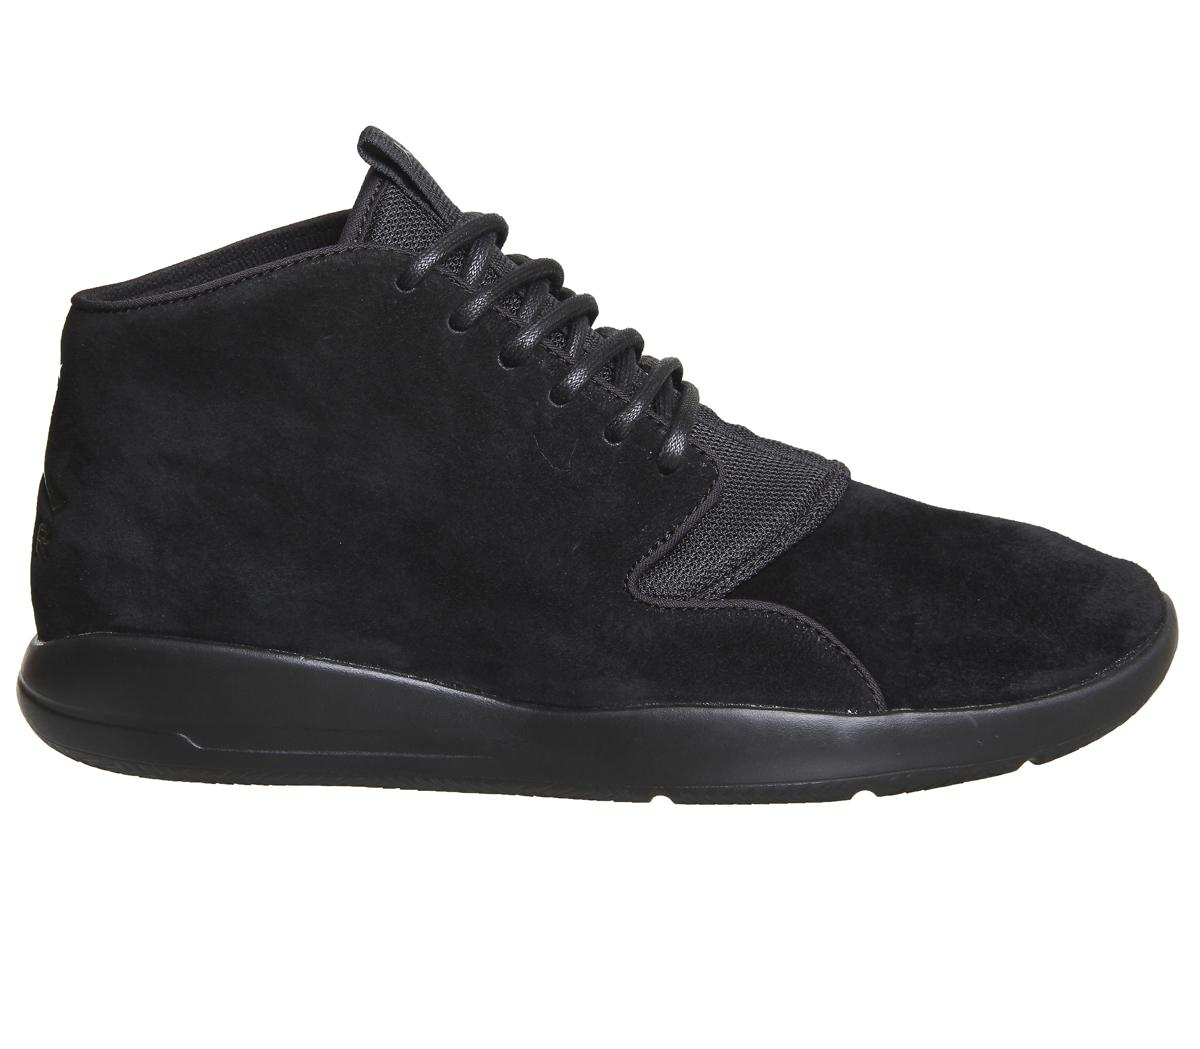 b1b2bca6eed0 Lyst - Nike Jordan Eclipse Chukka Lea Trainers in Black for Men